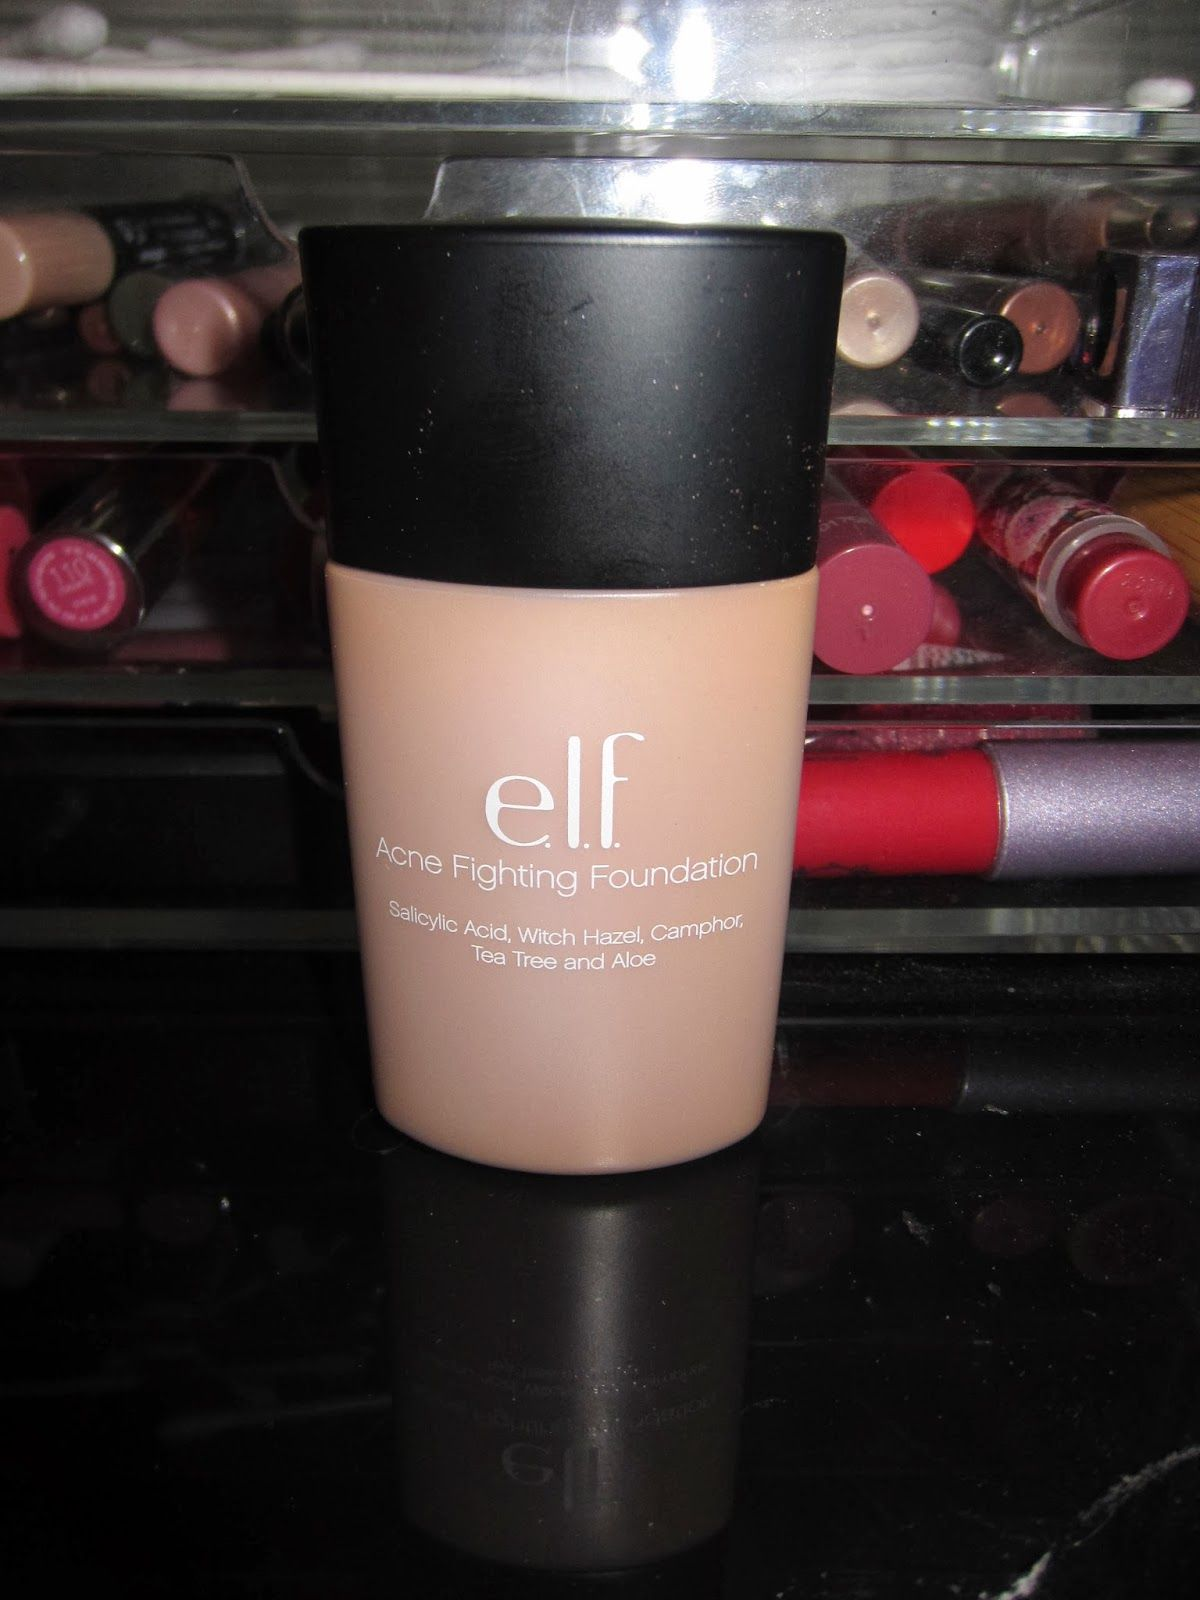 ELF Acne Fighting Foundation (With images) Acne